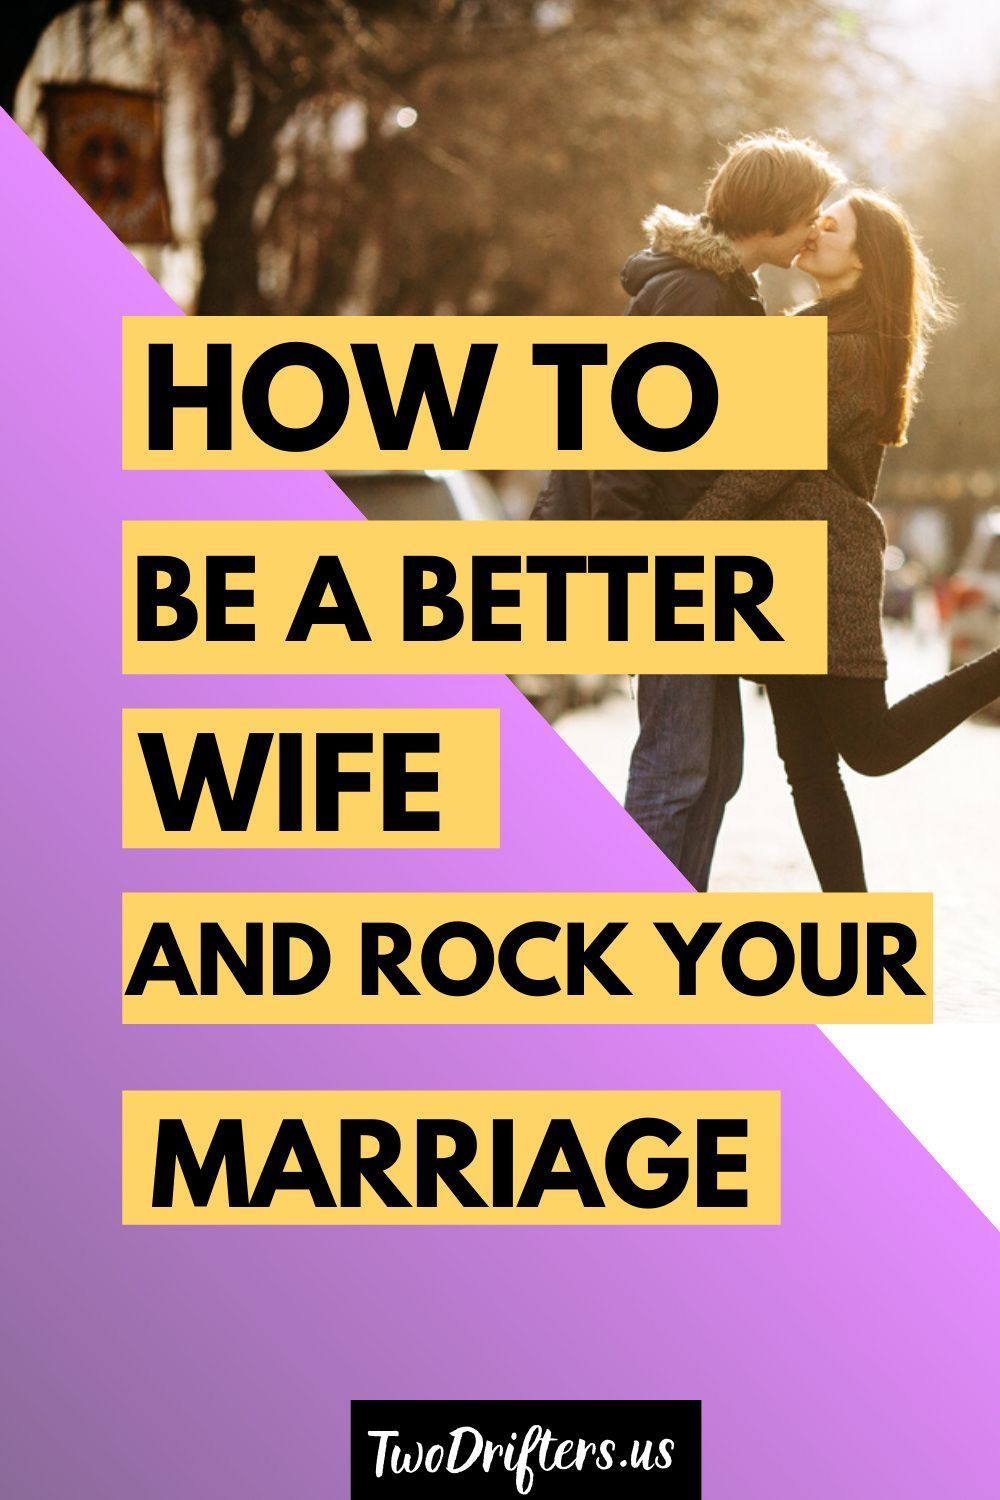 How to Be a Better Wife: 10 Tips to Improve Your Marriage